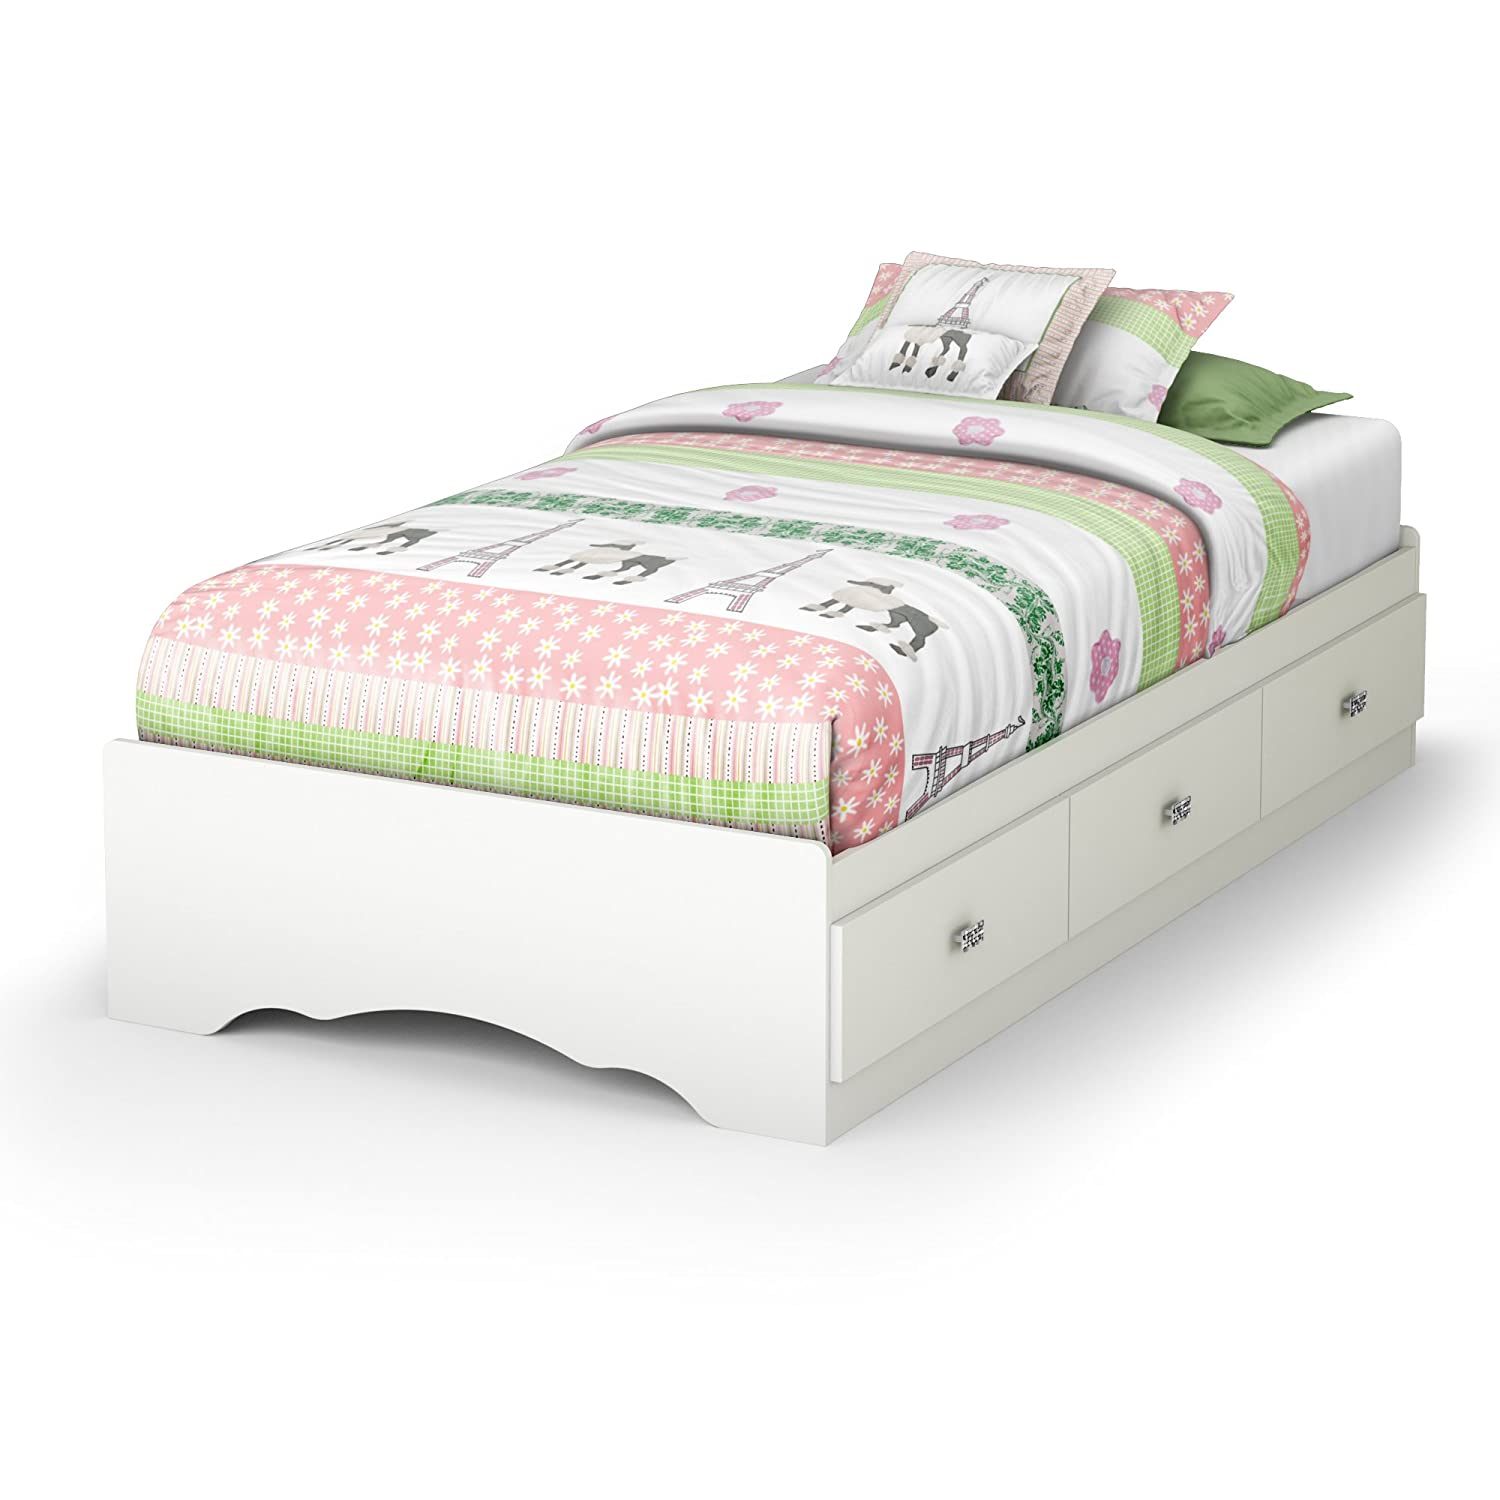 Amazon.com: Tiara Collection Twin Bed With Storage   Platform Bed With 3  Drawers   Pure White By South Shore: Kitchen U0026 Dining